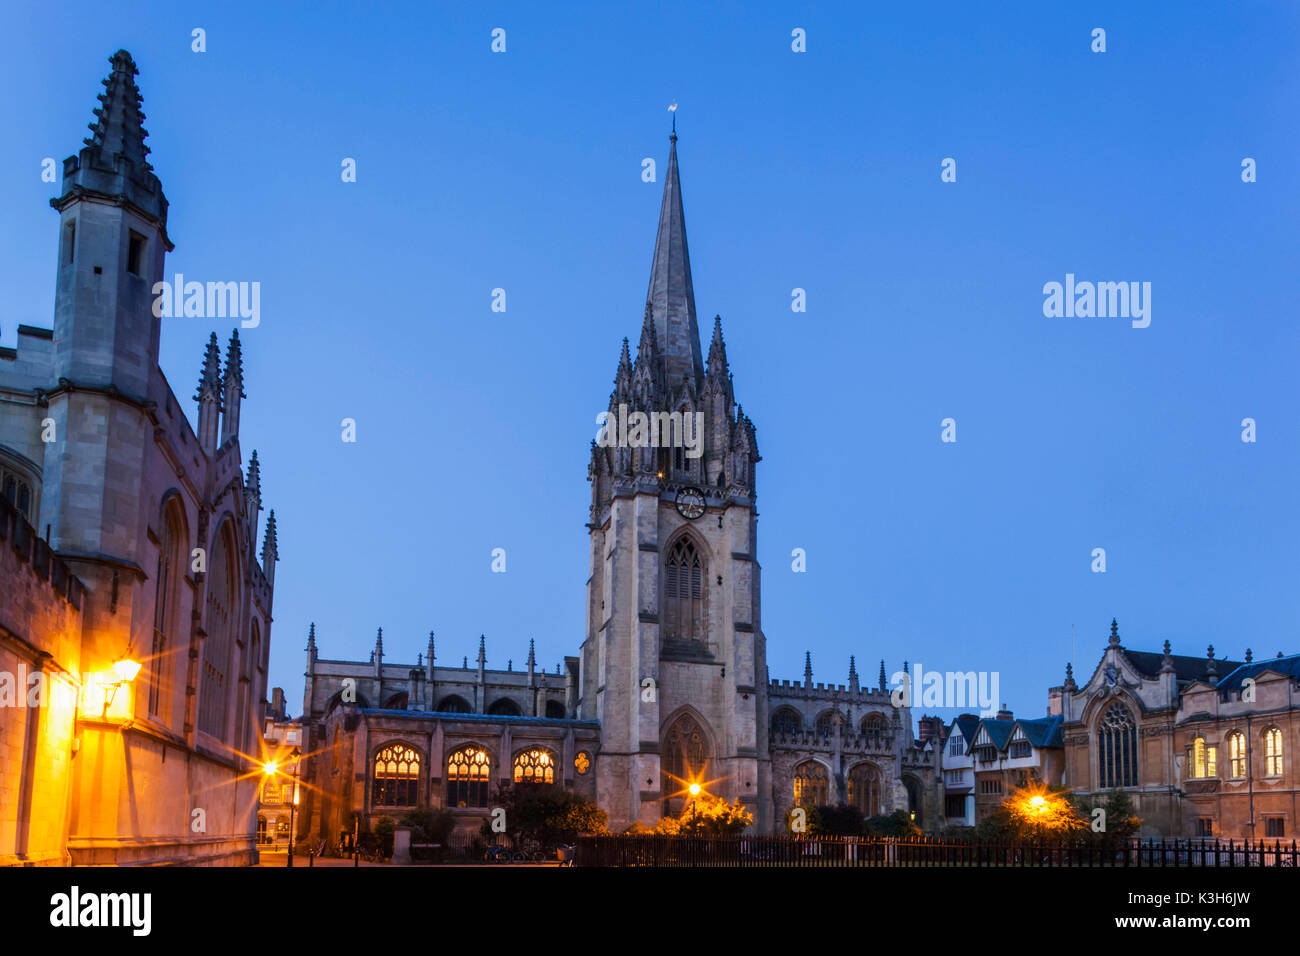 England, Oxfordshire, Oxford, The University Church of St.Mary The Virgin - Stock Image